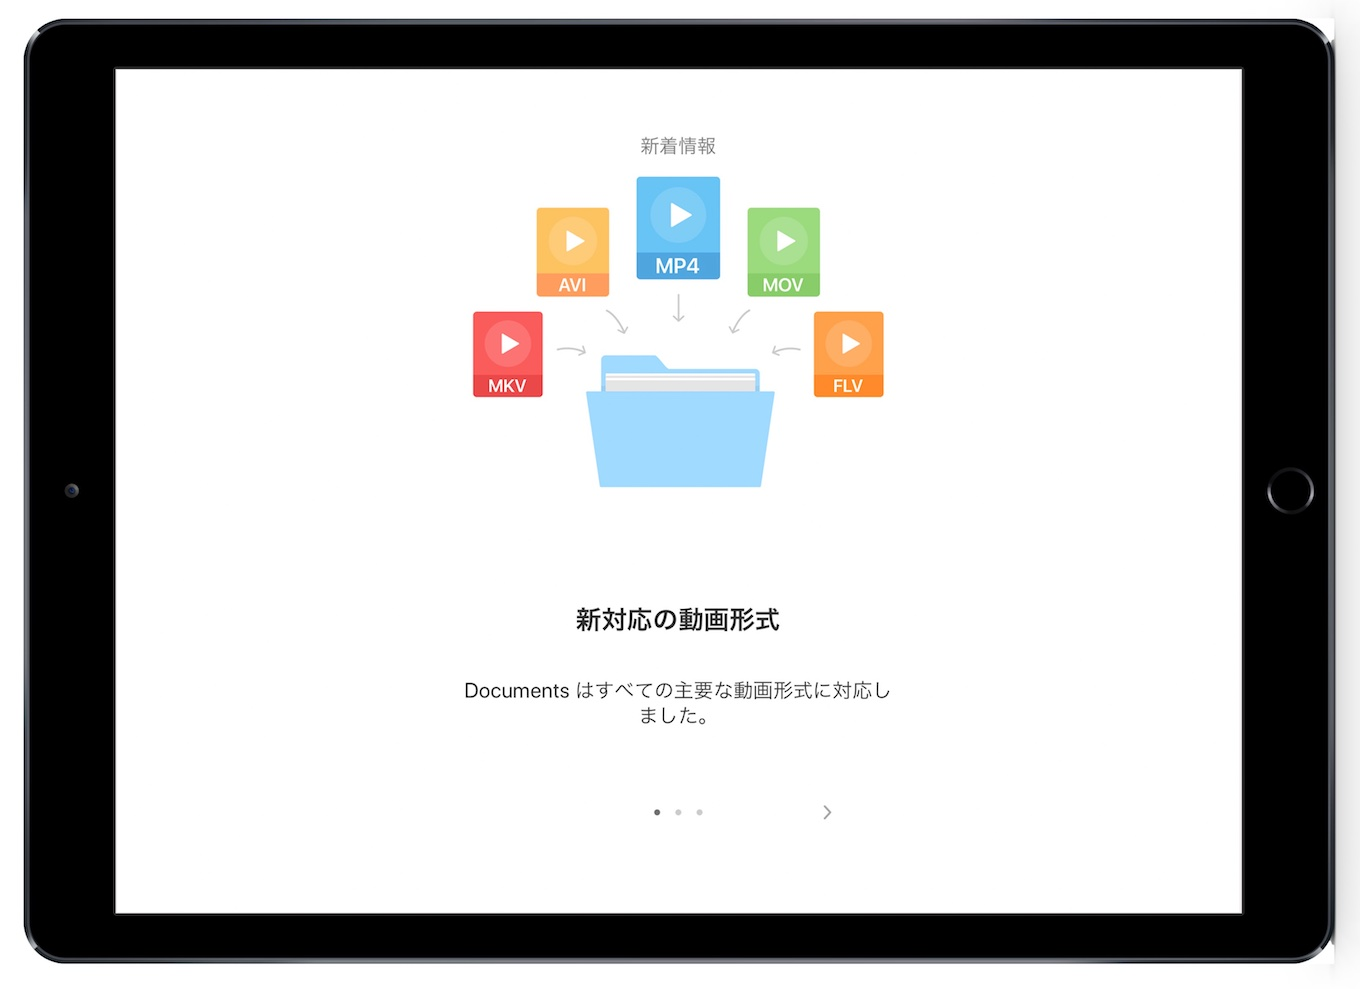 MP4やFLVをサポートしたDocuments by Readdleアプリ